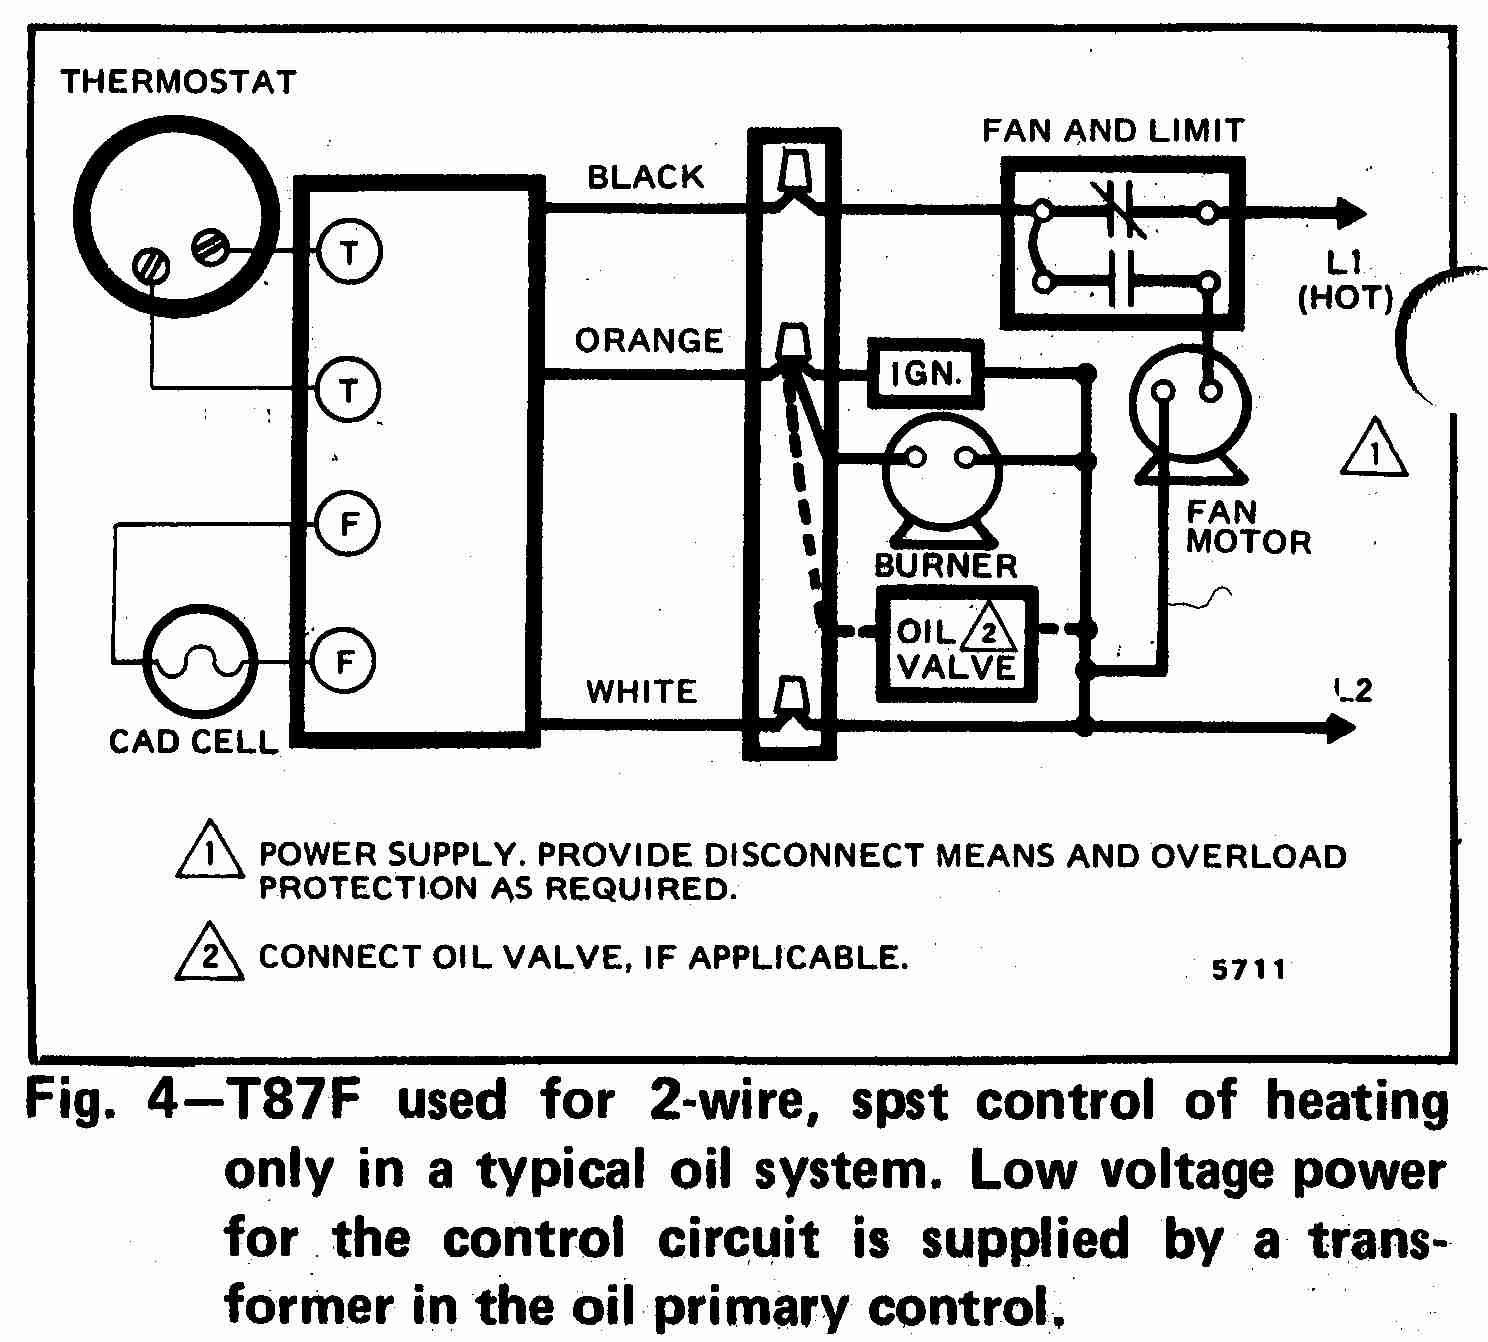 hight resolution of honeywell v8043f1036 wiring diagram diagram diagram wire charthoneywell v8043f1036 wiring diagram